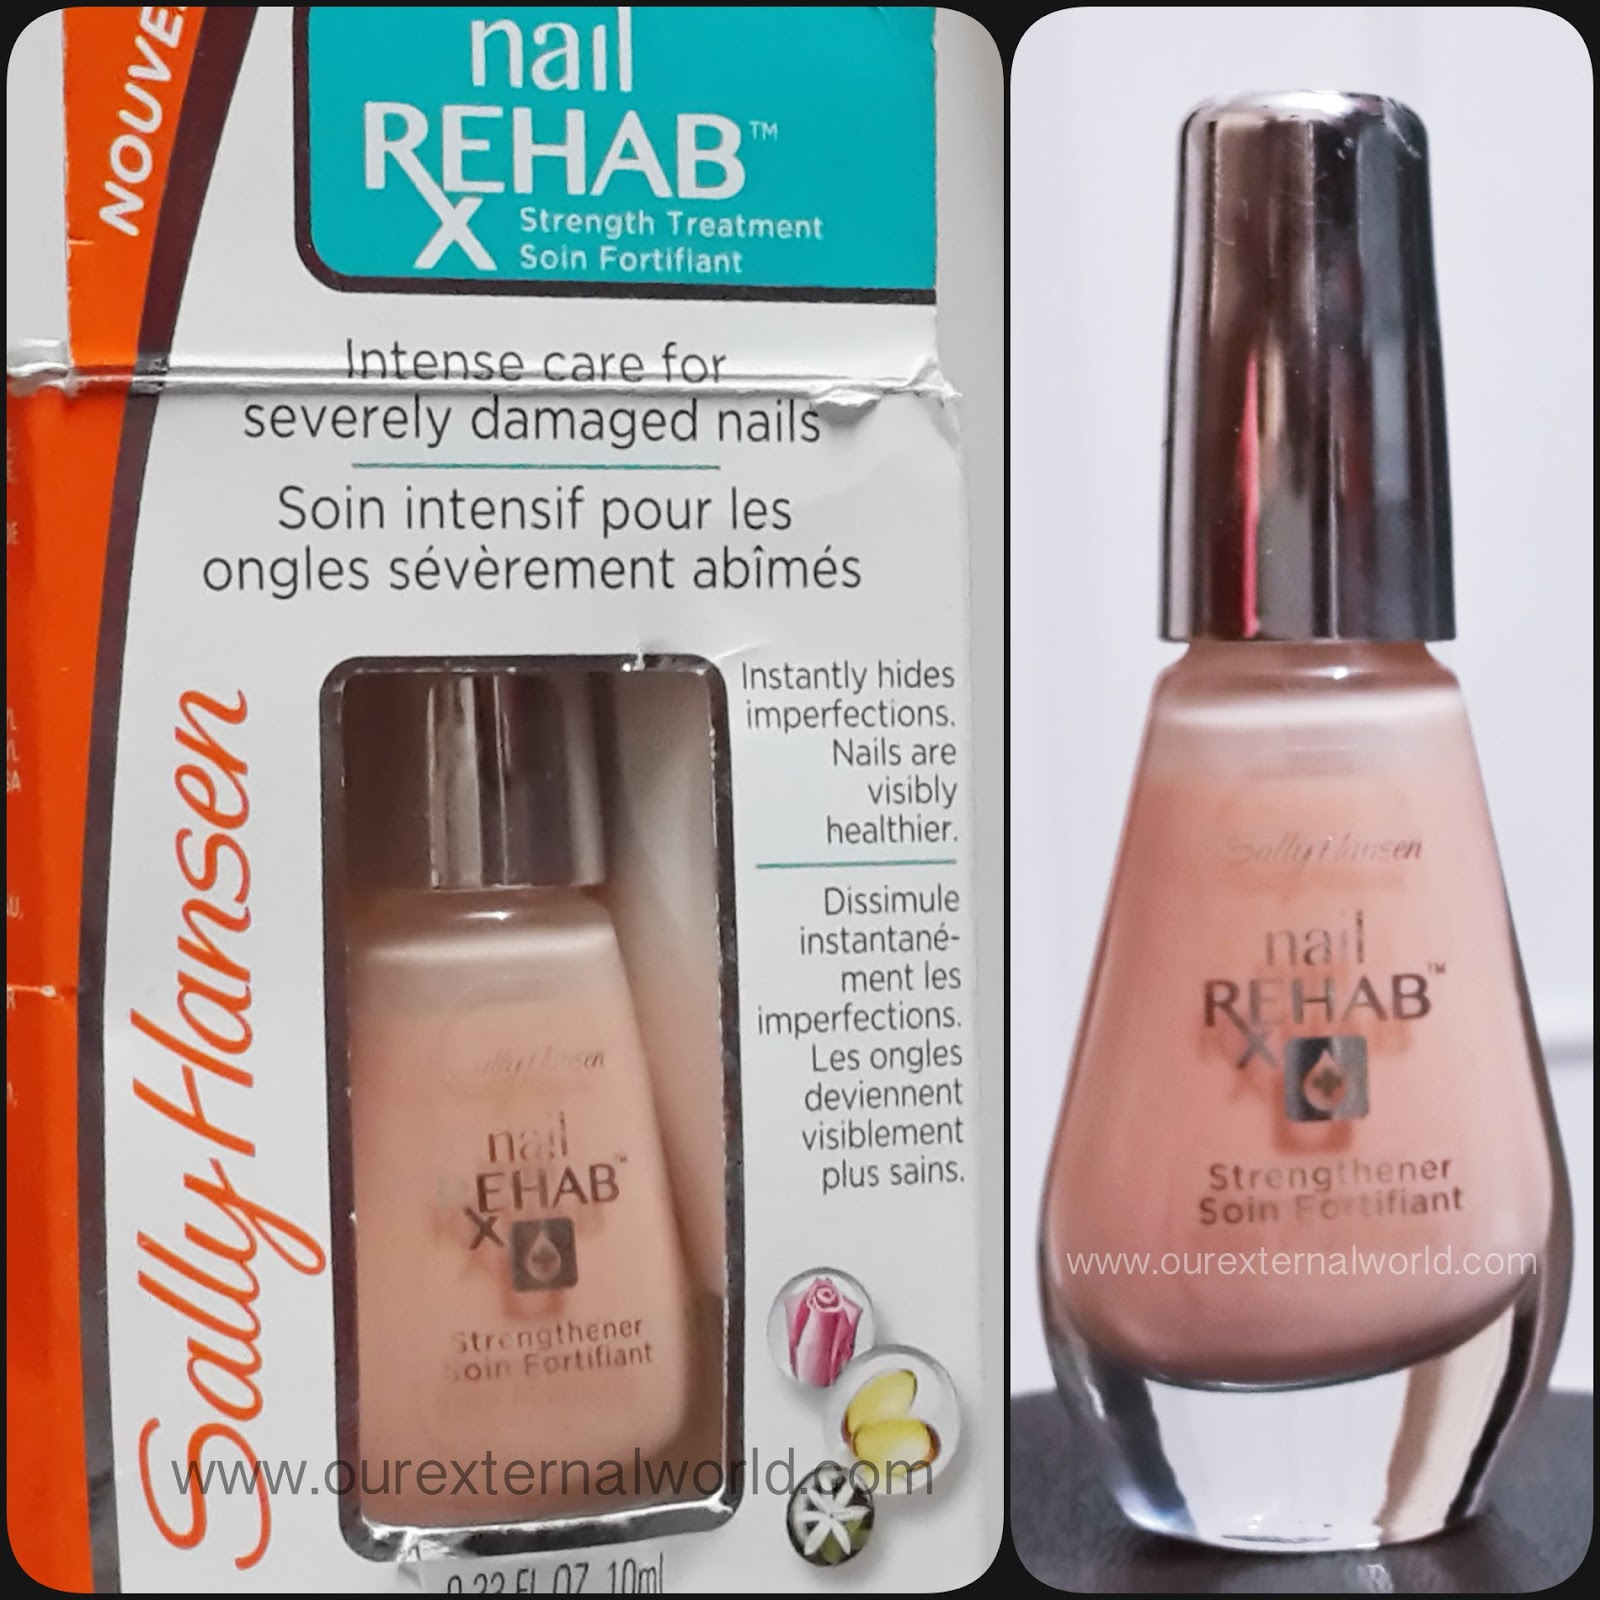 Hansen Nail Rehab - Repair Damaged Nails - Review